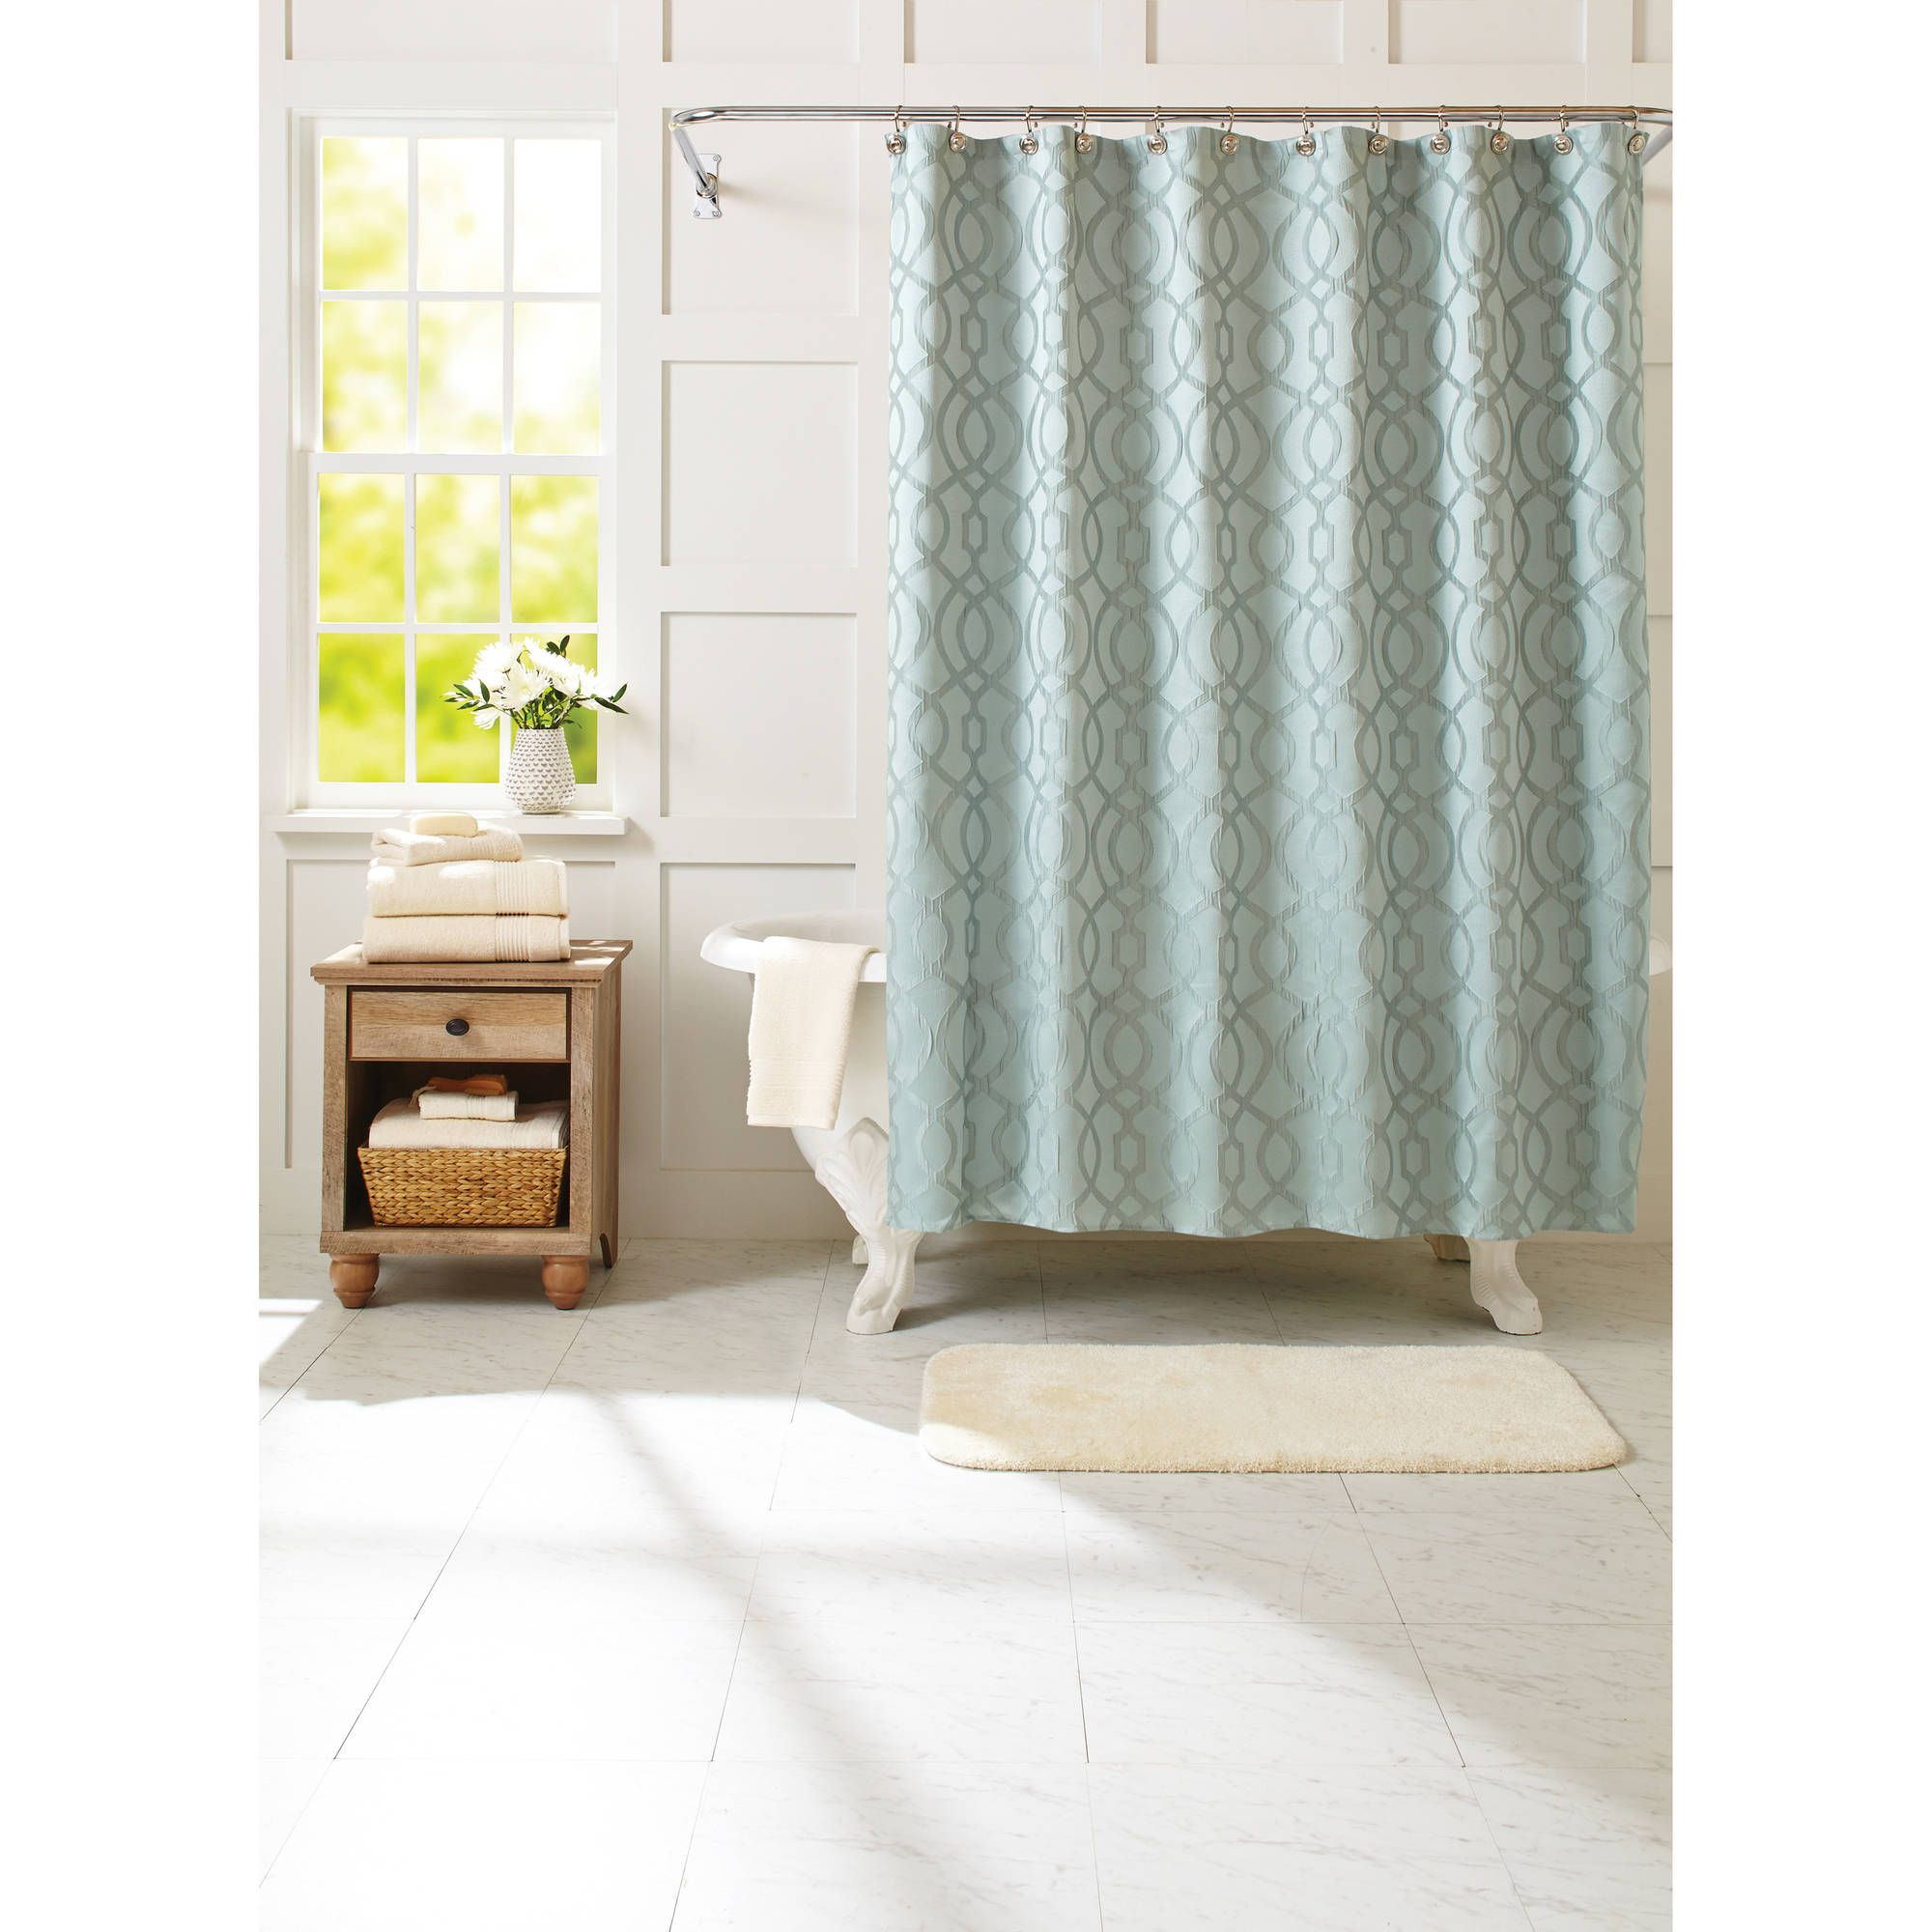 Better Homes And Garden Bathroom Accessories - The Best Accessories ...